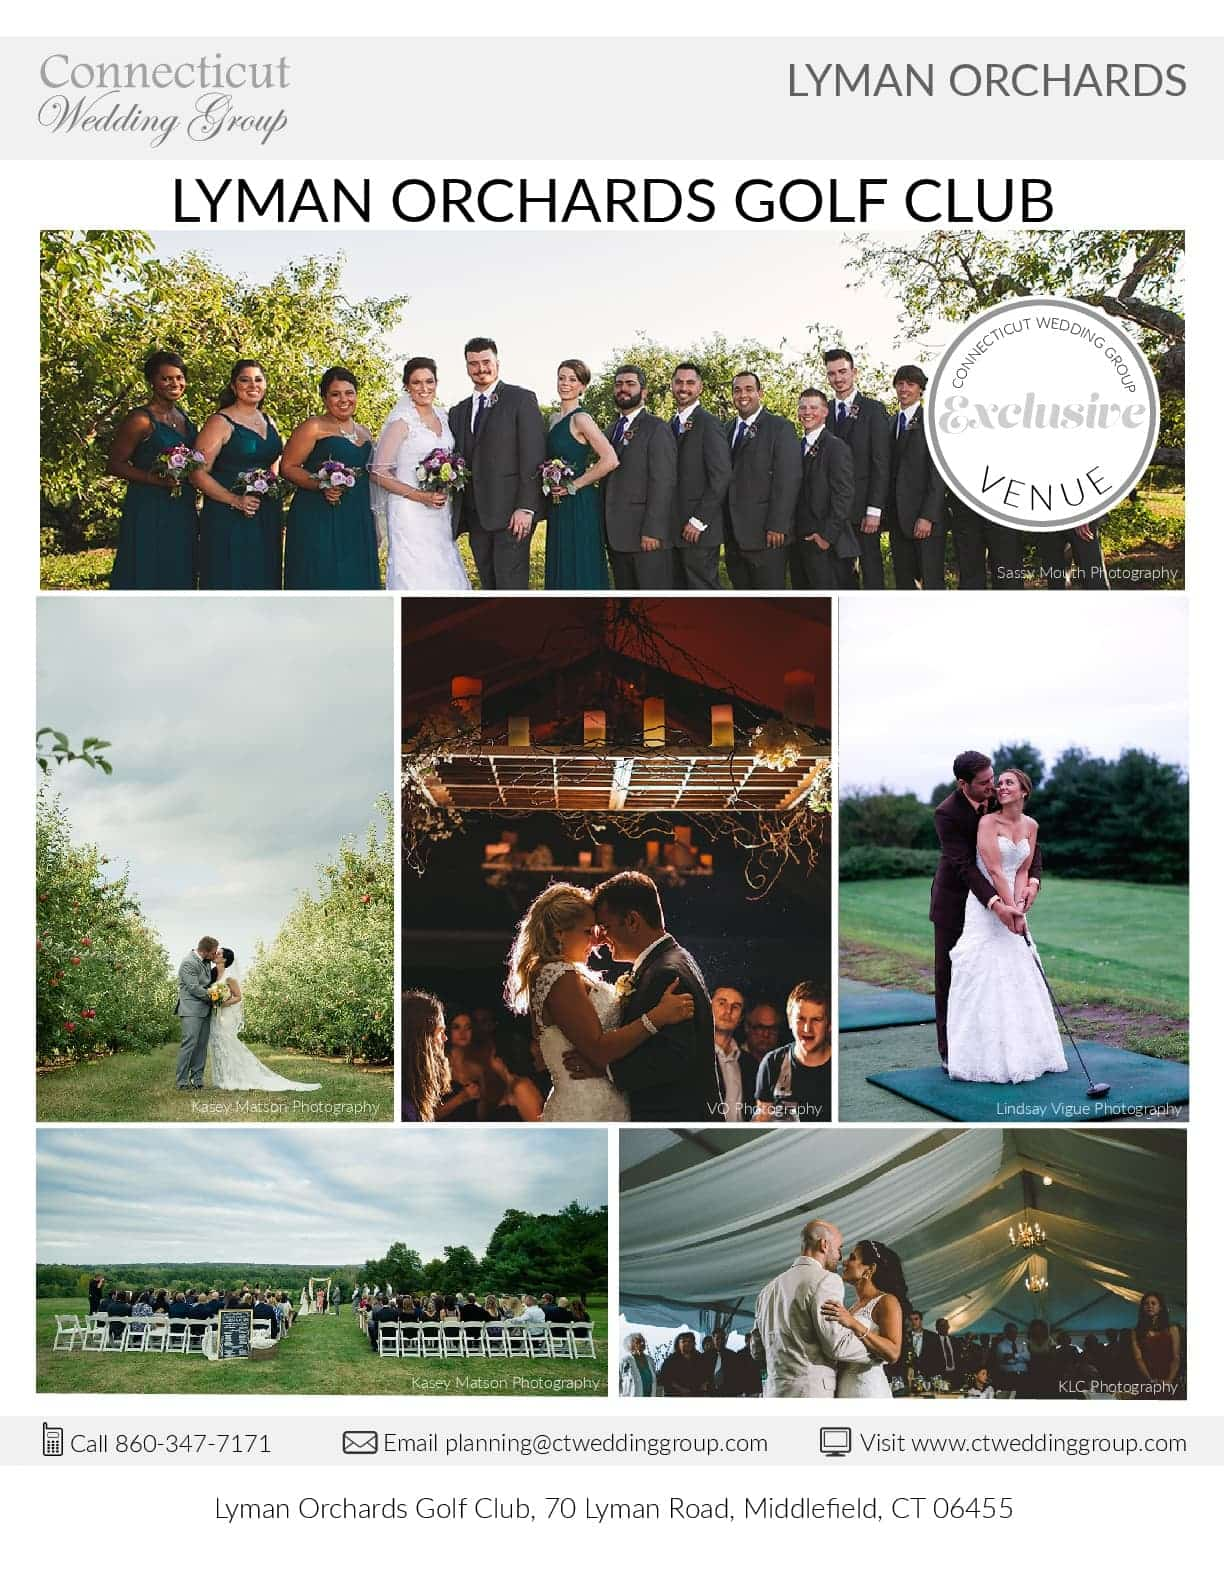 117_15312_Lyman-Orchards-Golf-Club-Signature-Wedding-Package_2017-001-min